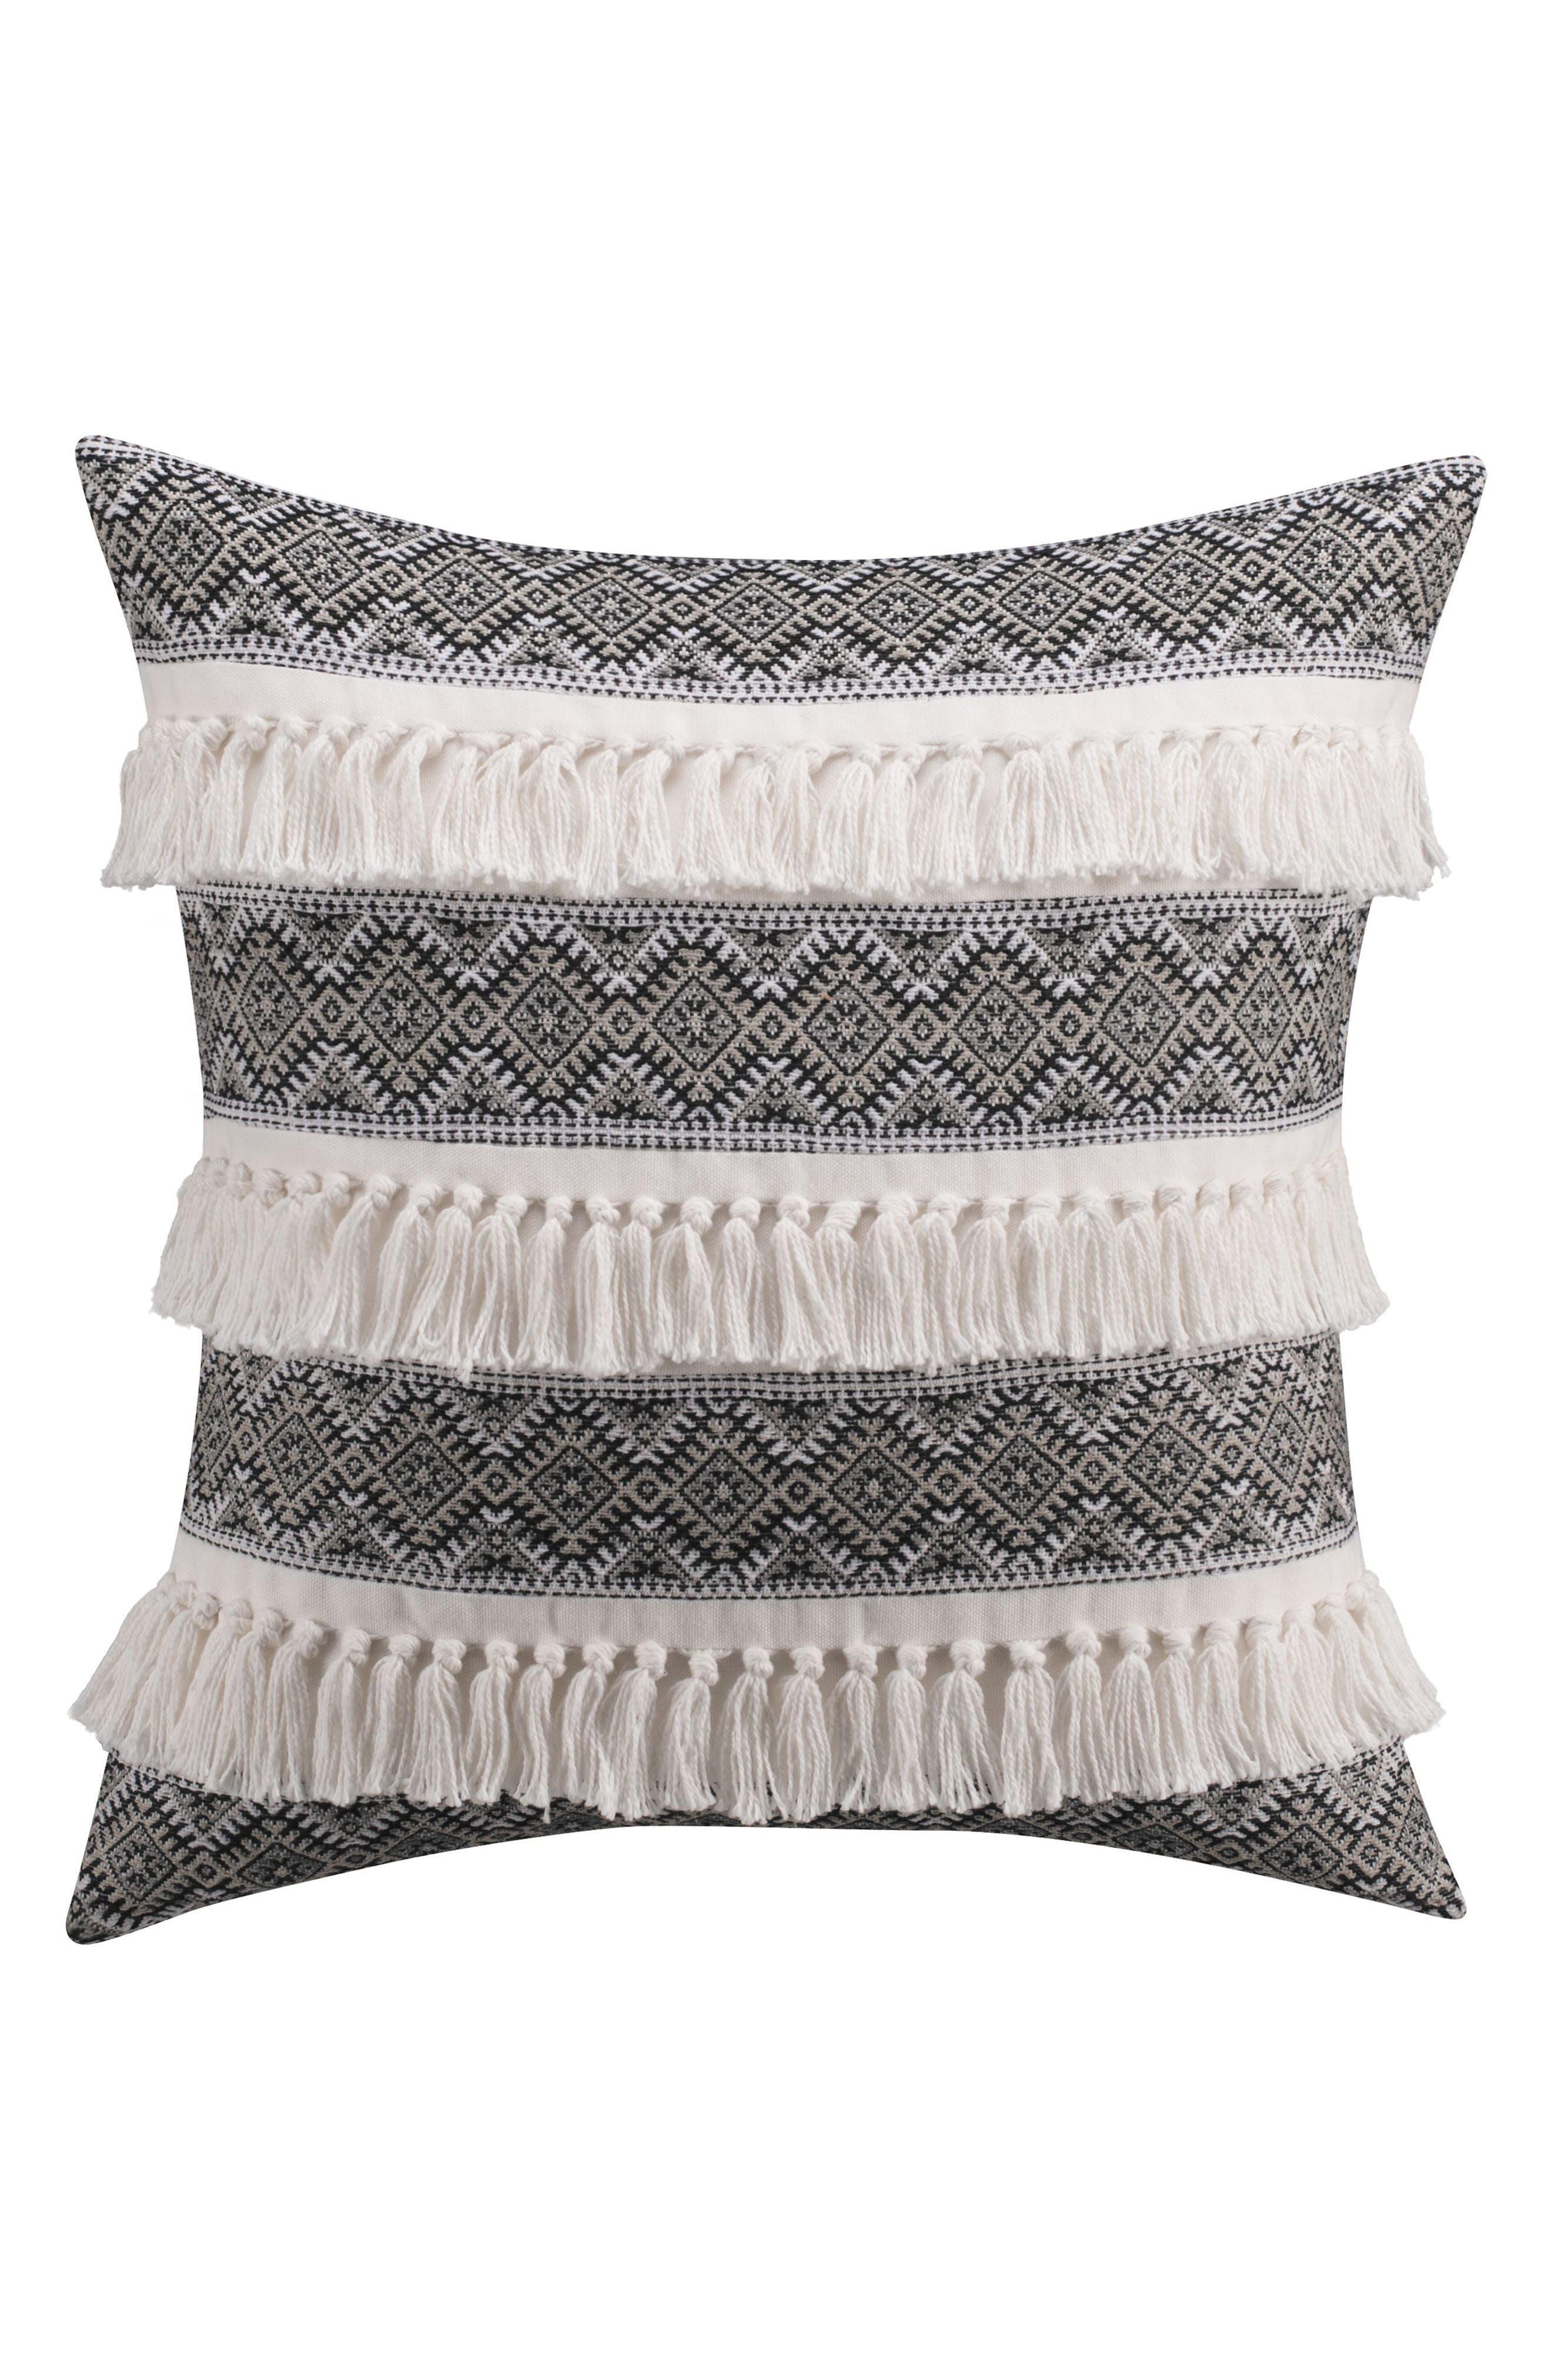 Folk Floral Embroidered Accent Pillow,                         Main,                         color, White/ Black